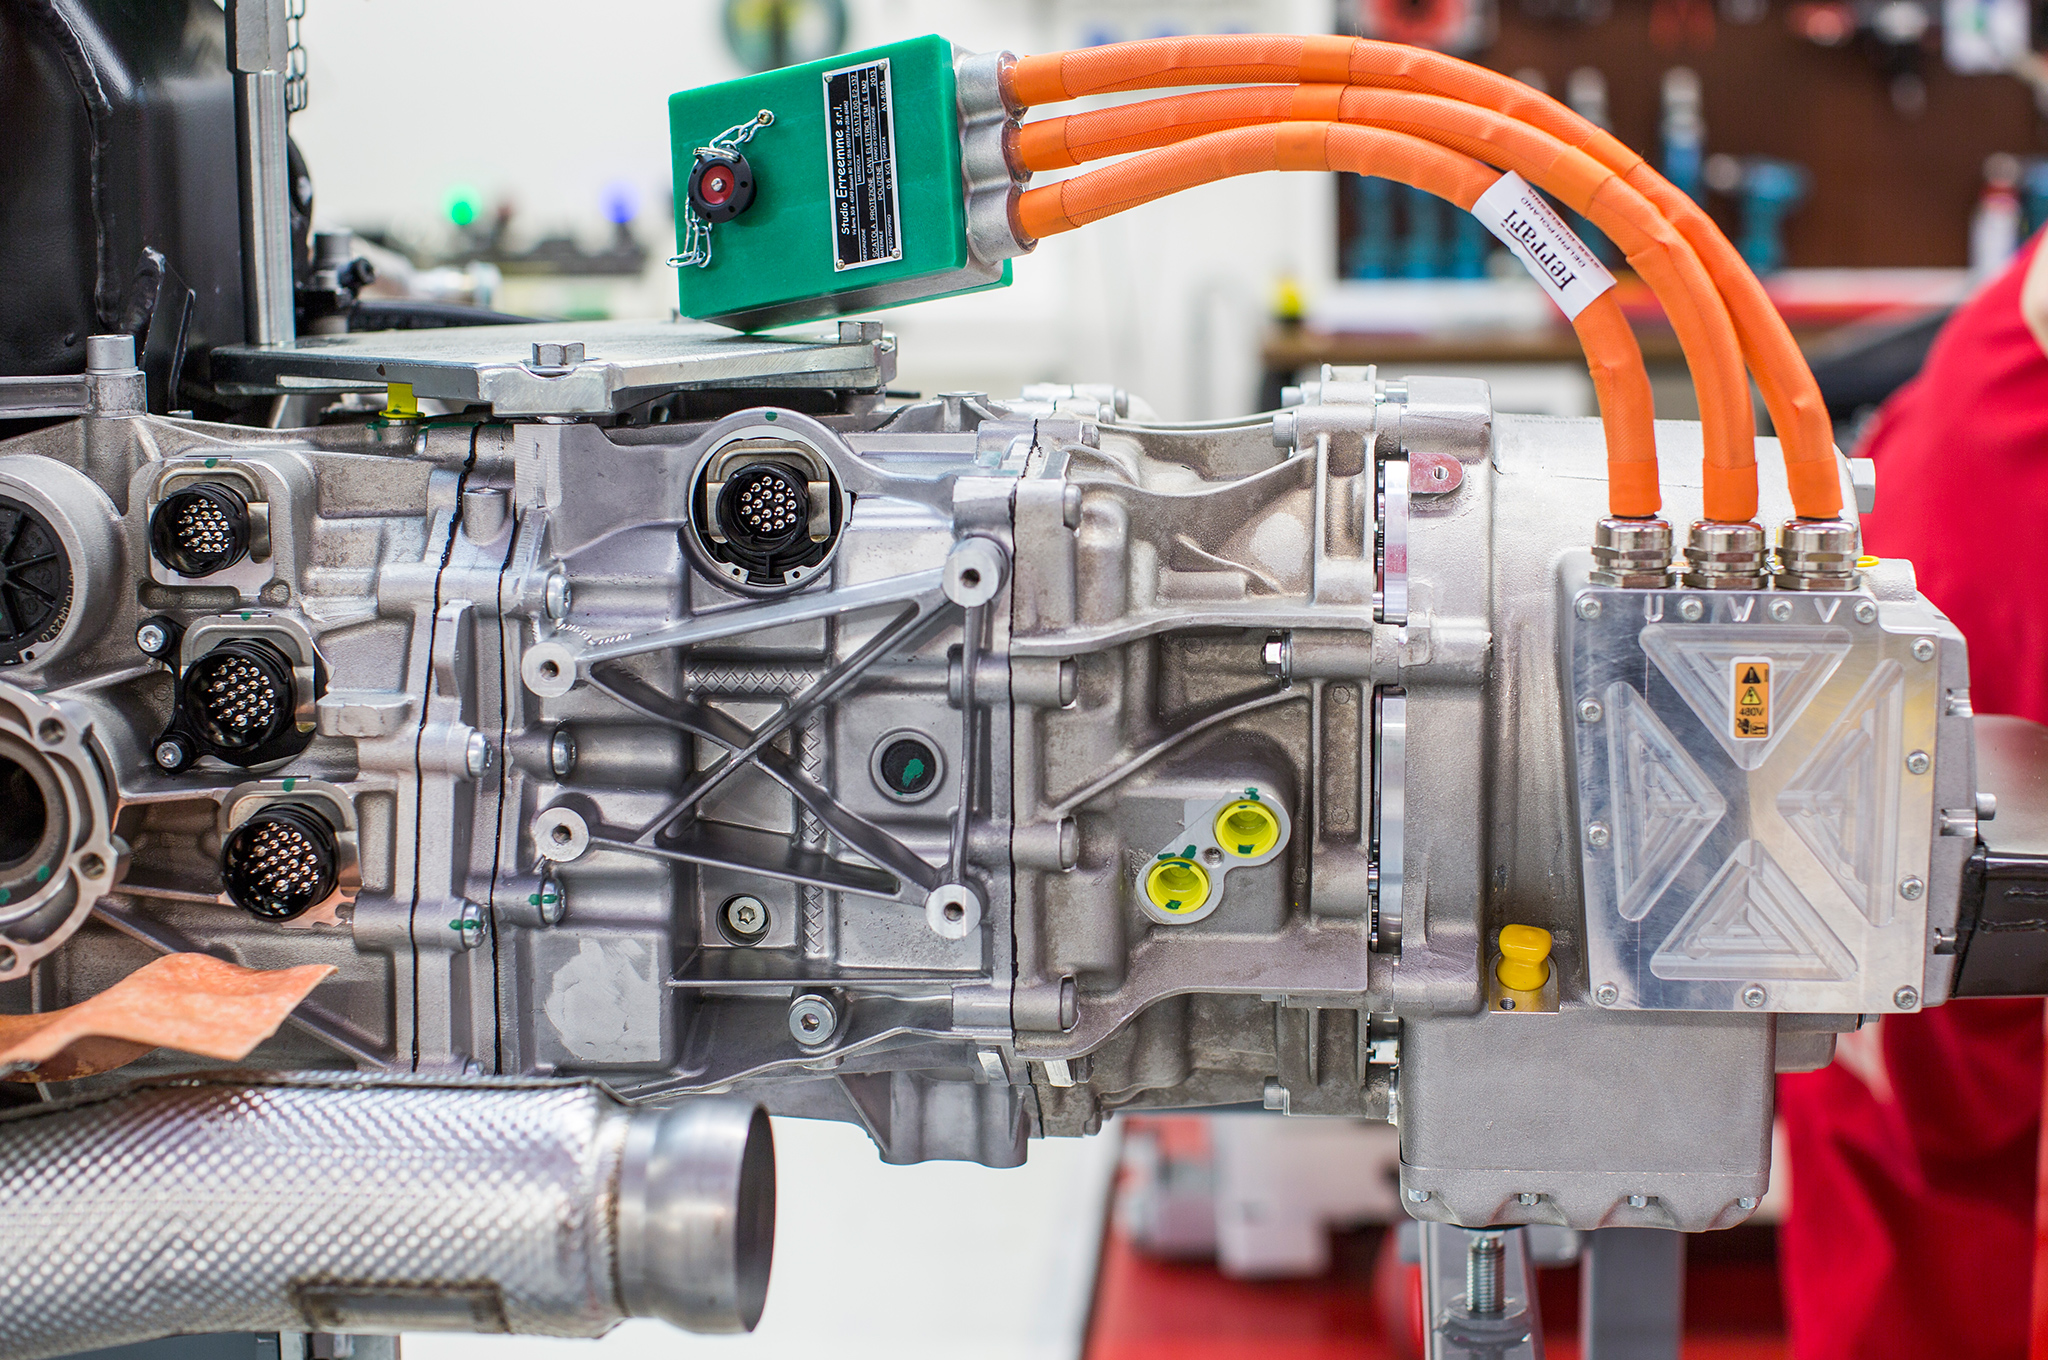 At the very rear of its chassis, aft of the V-12 engine and the seven-speed dual-clutch gearbox, resides the LaFerrari traction/generator electric motor, here with three orange power cables that will be attached to electric inverters.